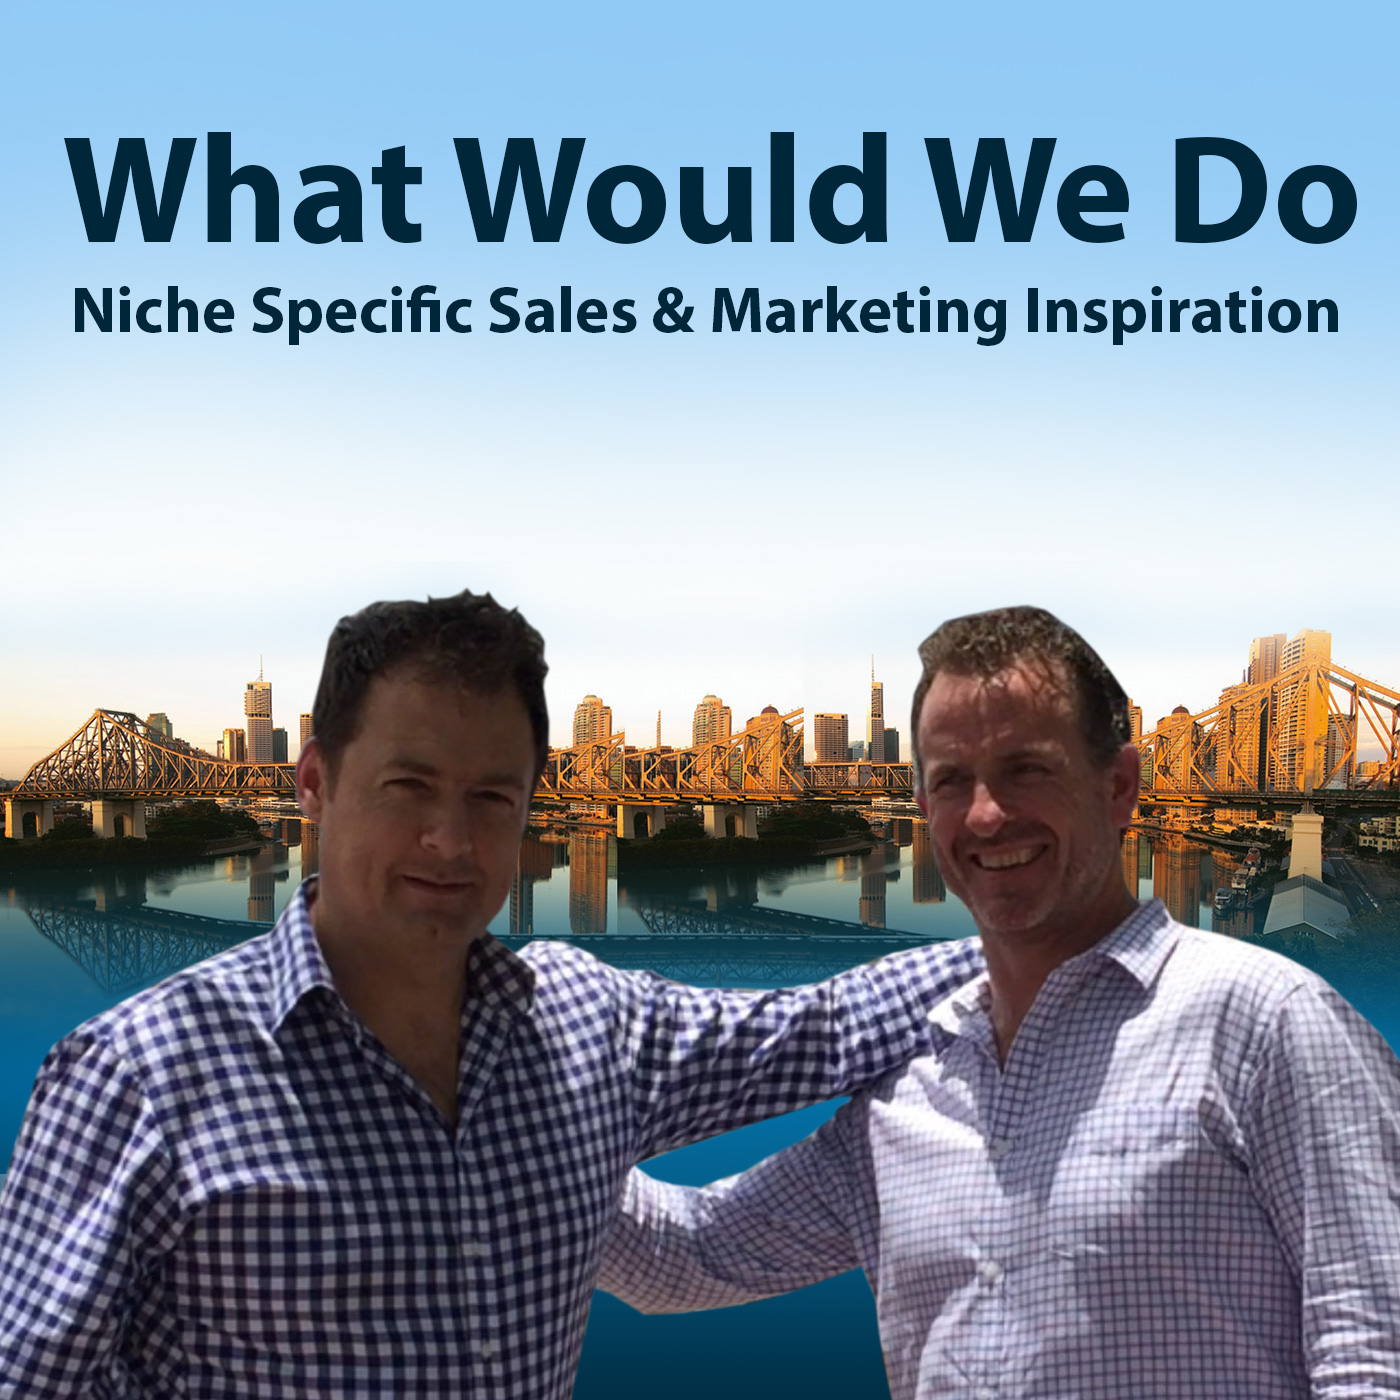 ✔What Would We Do✔ -  Niche Specific Sales & Marketing Inspiration - ✔Be Inspired✔